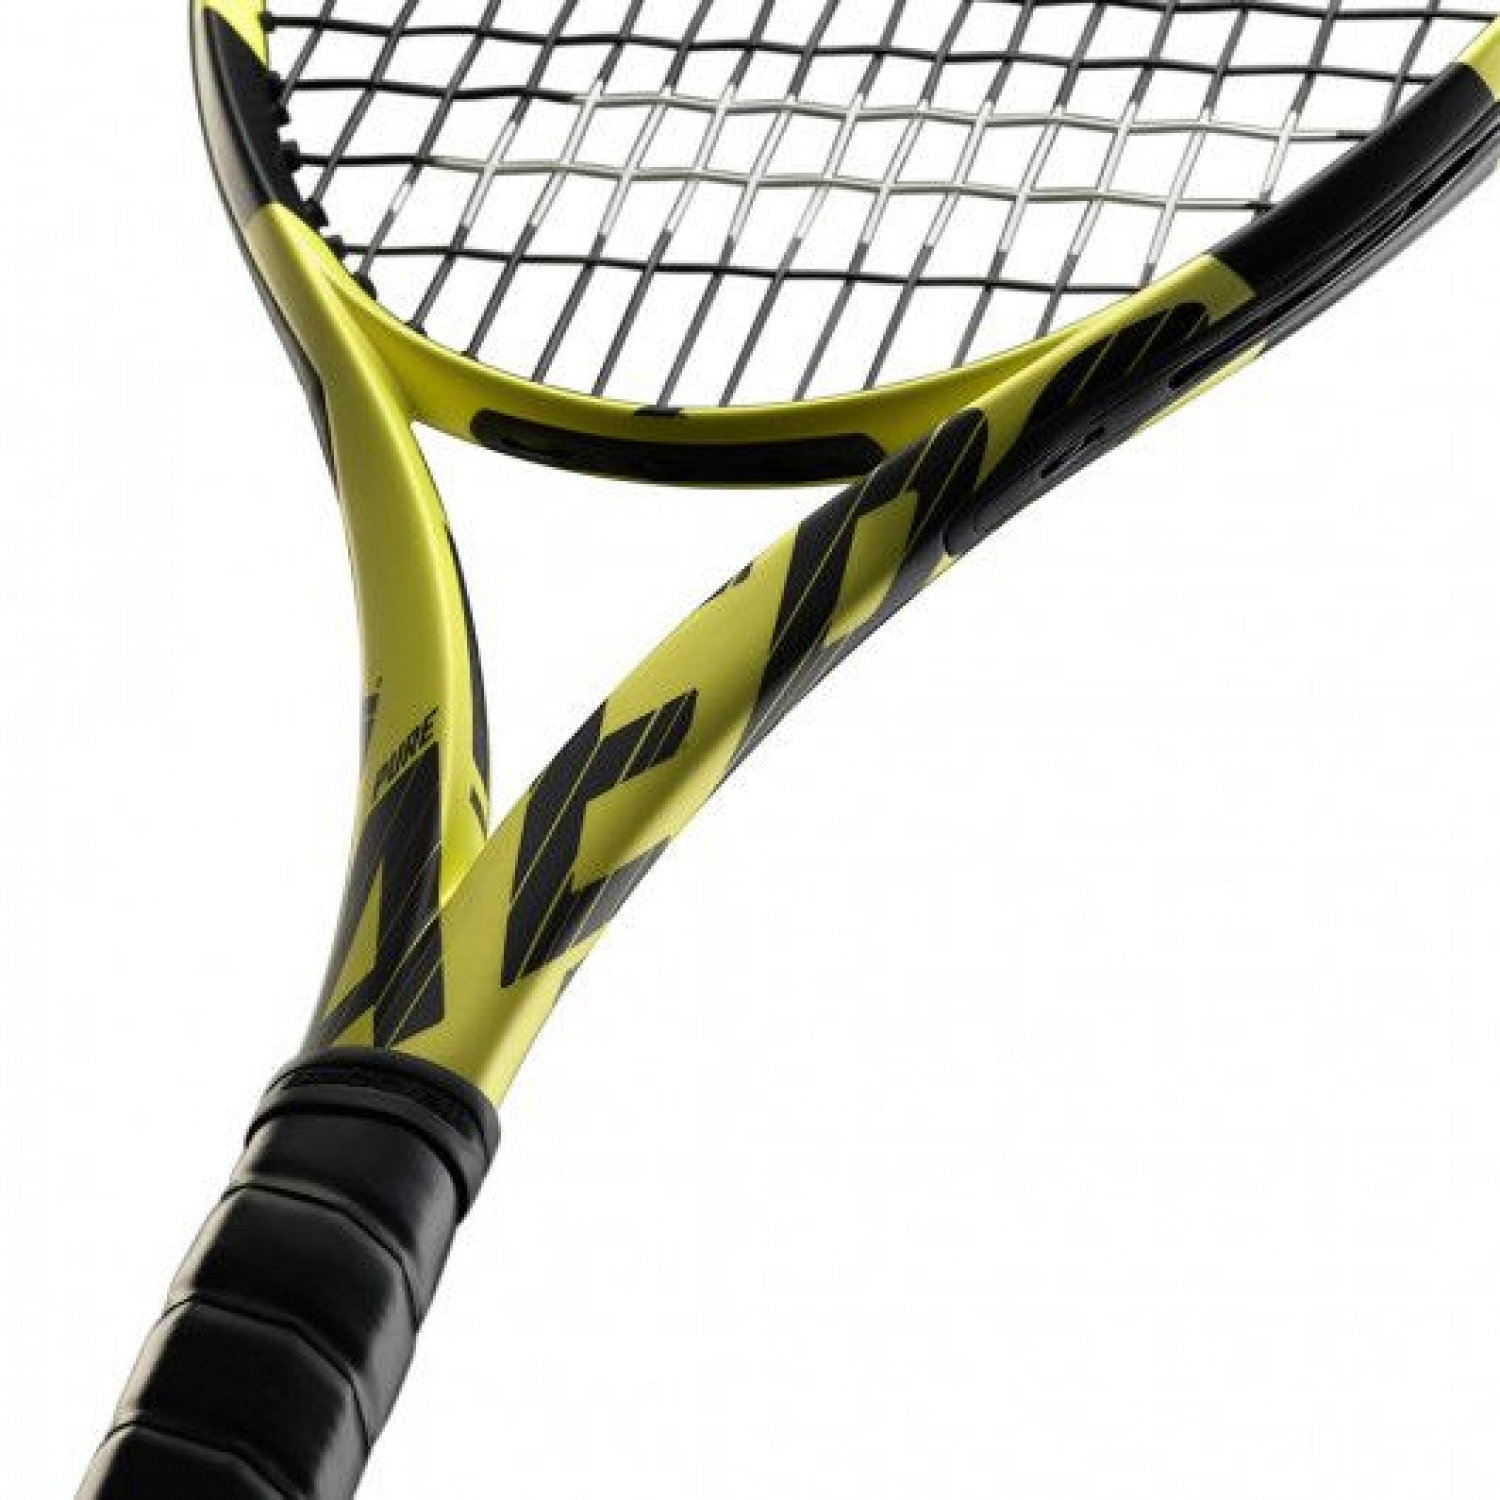 Ракетка Babolat Pure Aero 2019 black/yellow